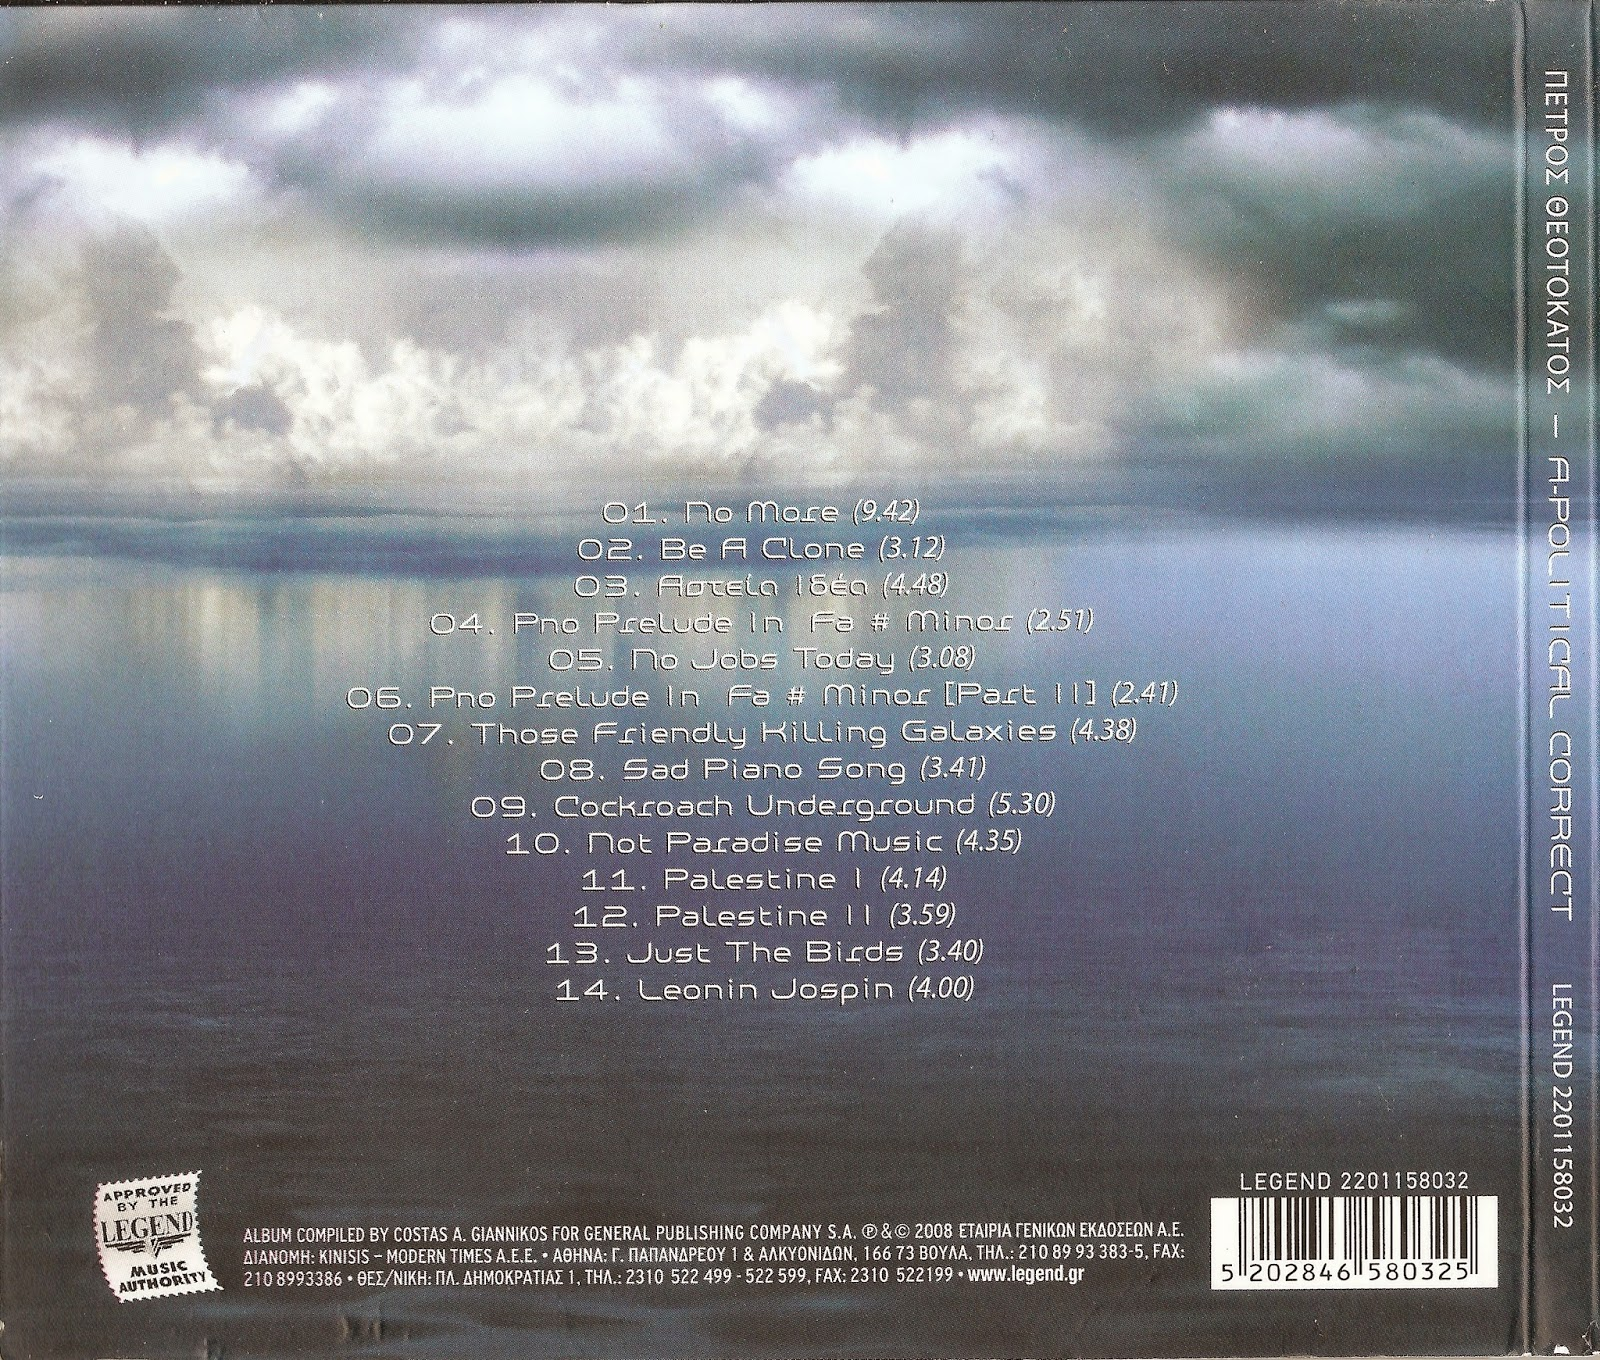 PETROS THEOTOKATOS - A-POLITICAL CORRECT cd back